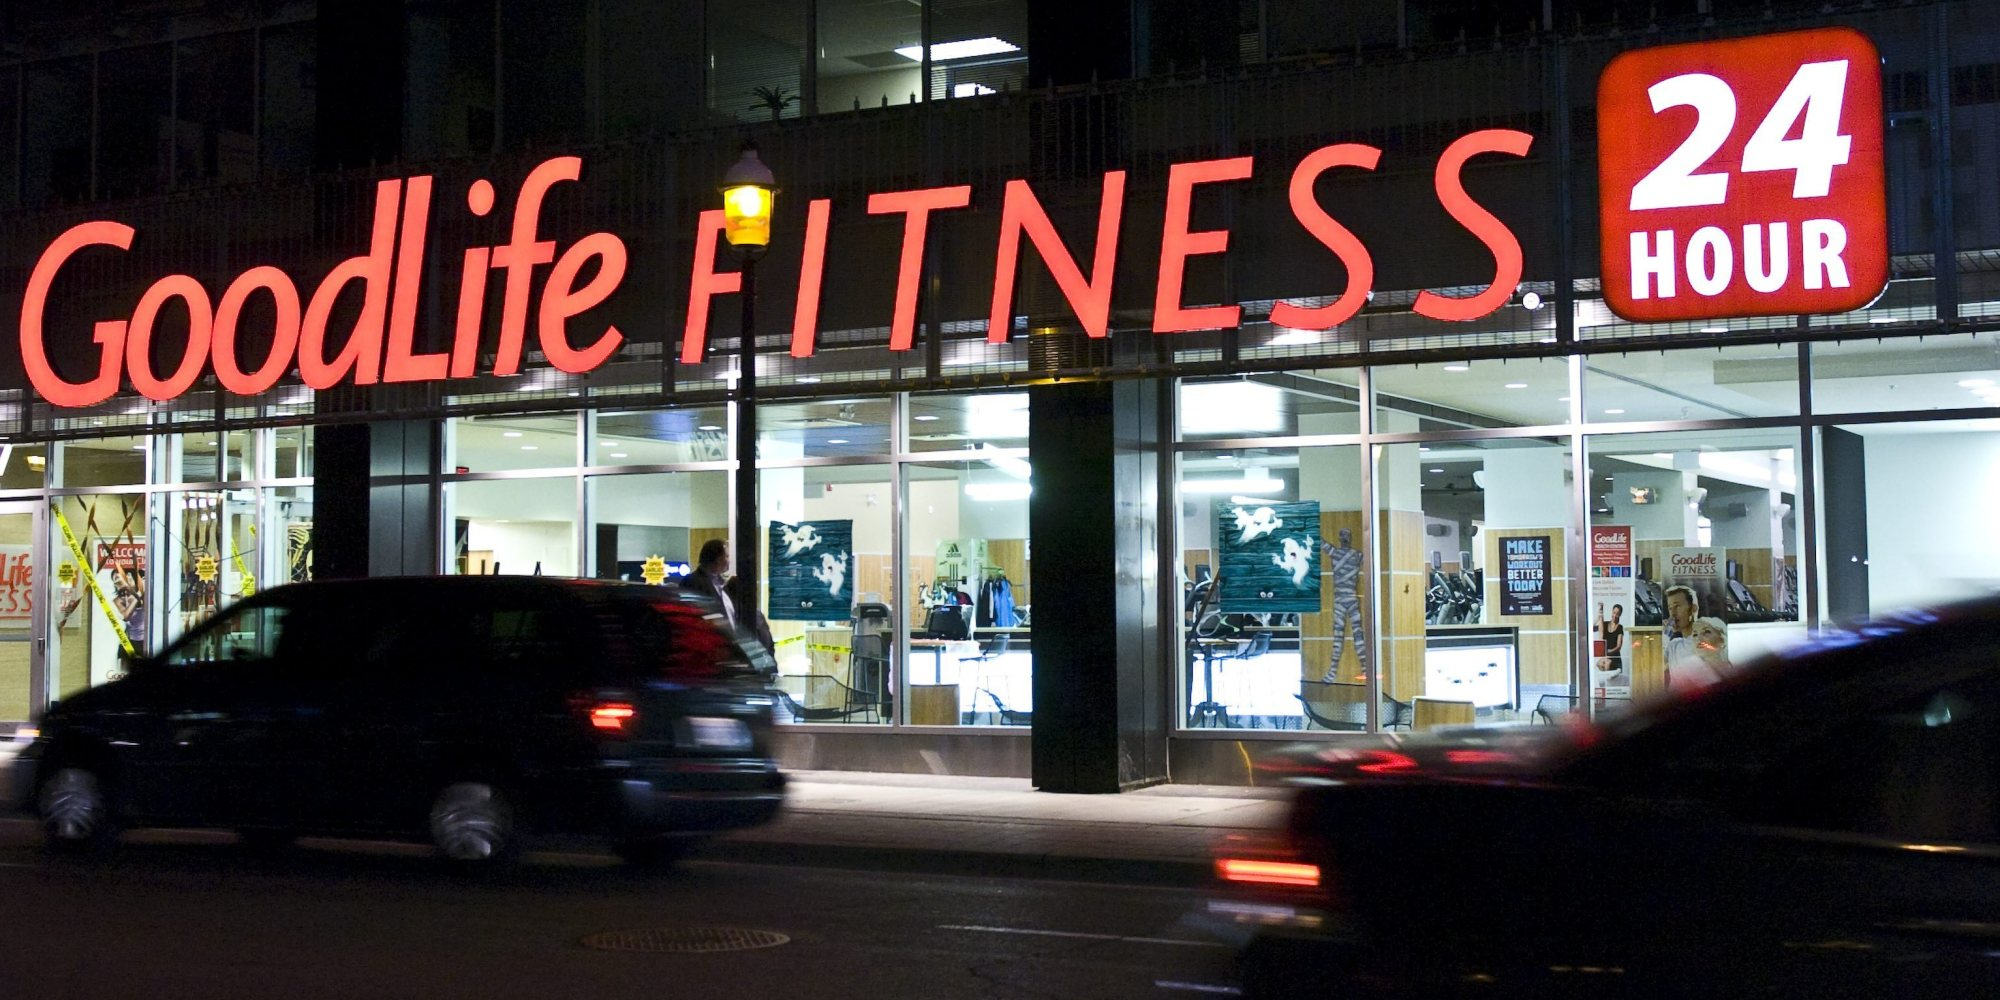 good life fitness Our 24 hour gym and fitness club in brisbane with clubs in indooroopilly, oxley and runcorn will help you look after your health and feel good.